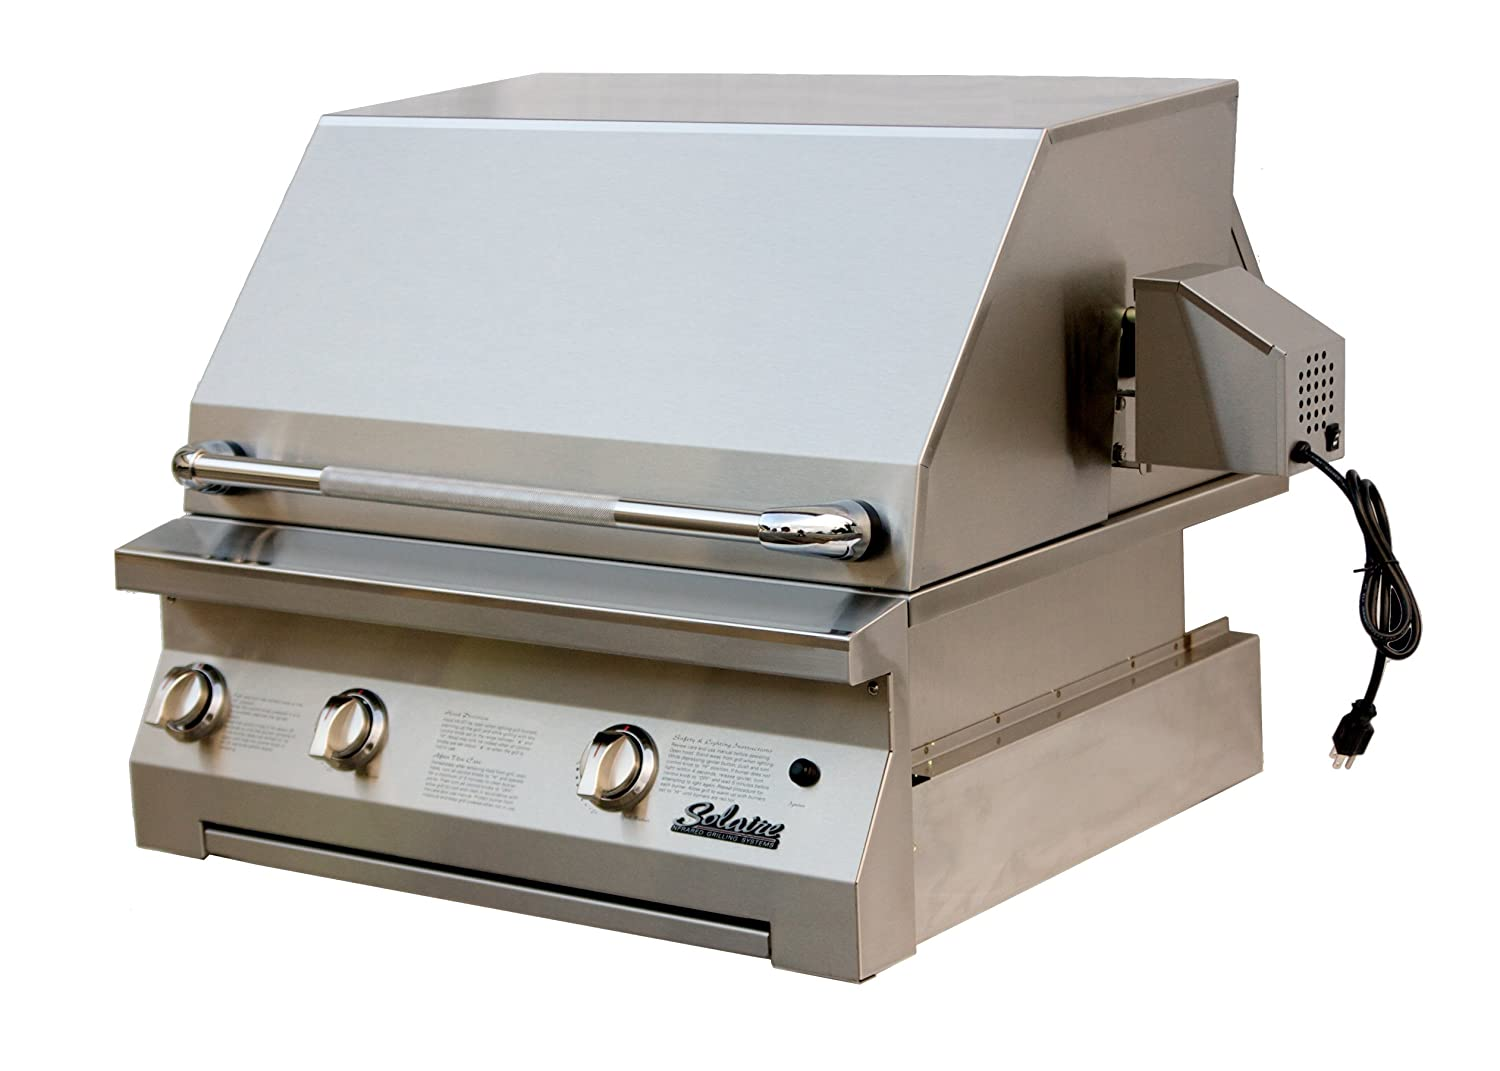 Solaire 30-Inch InfraVection Natural Gas Built-In Grill with Rotisserie Kit, Stainless Steel